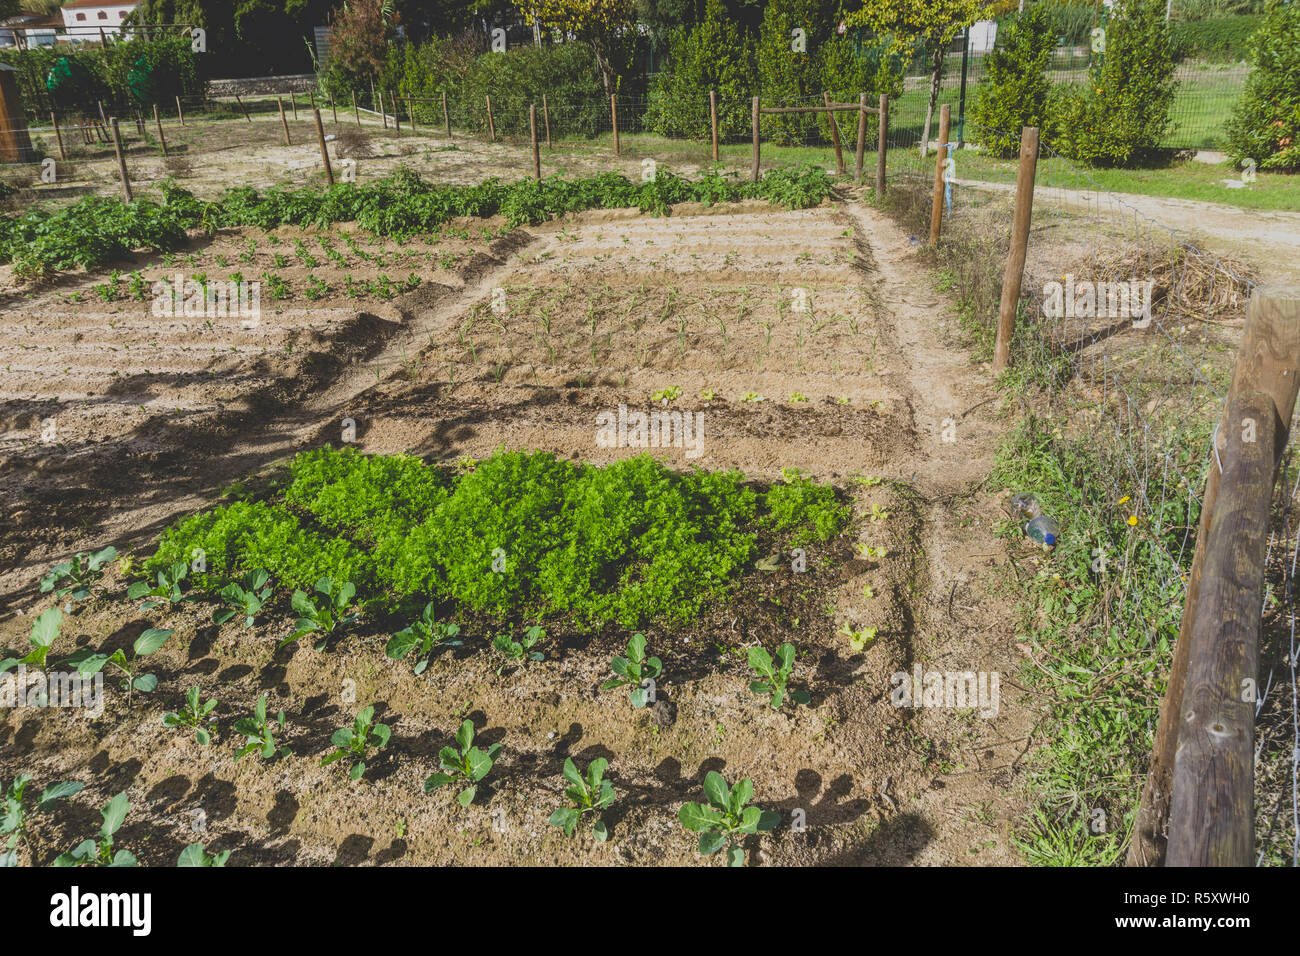 Urban gardening. City urbanized vegetable garden. Growing, farming vegetables in the city. Agriculture of organic hand grown food. Self sustained syst - Stock Image